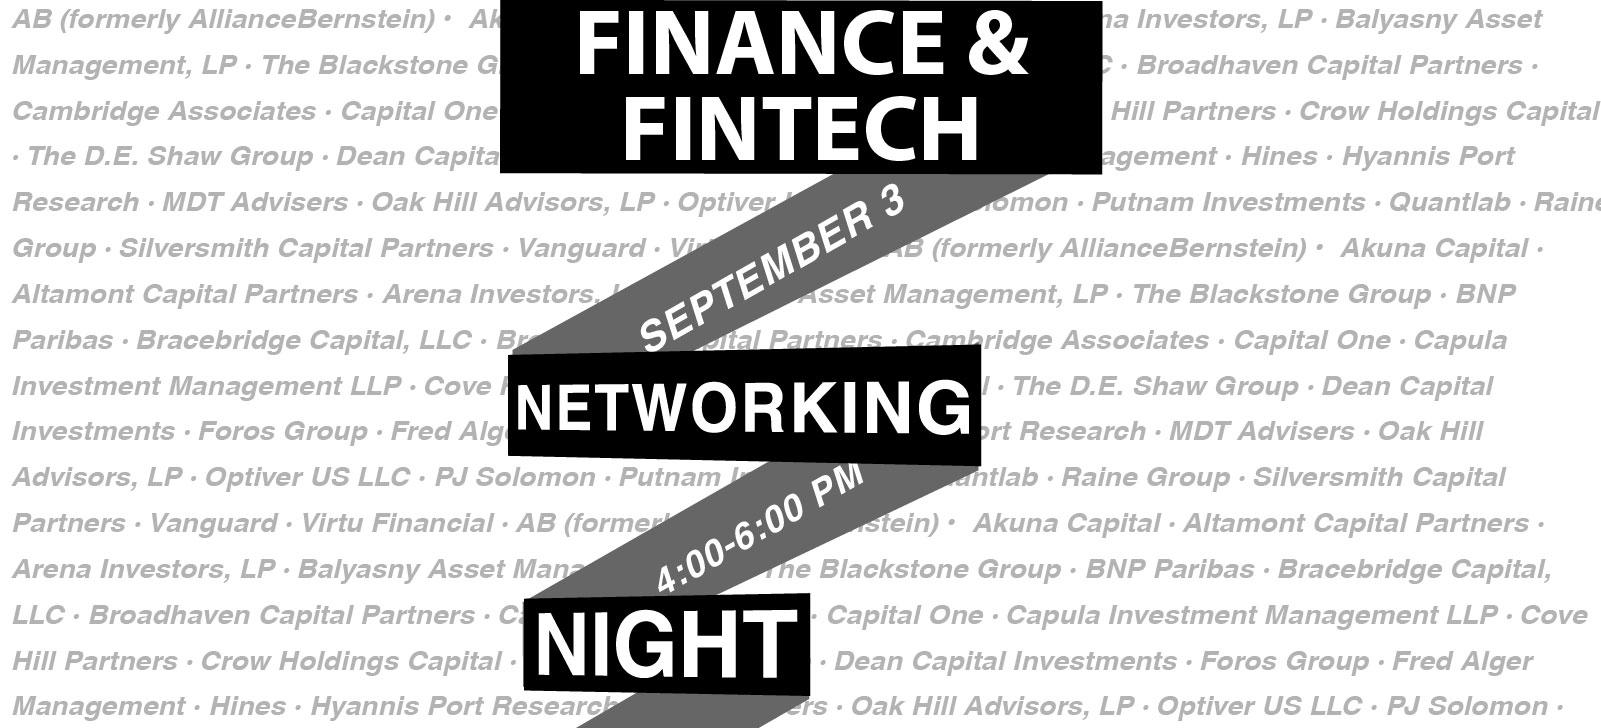 Finance & FinTech Networking Banner